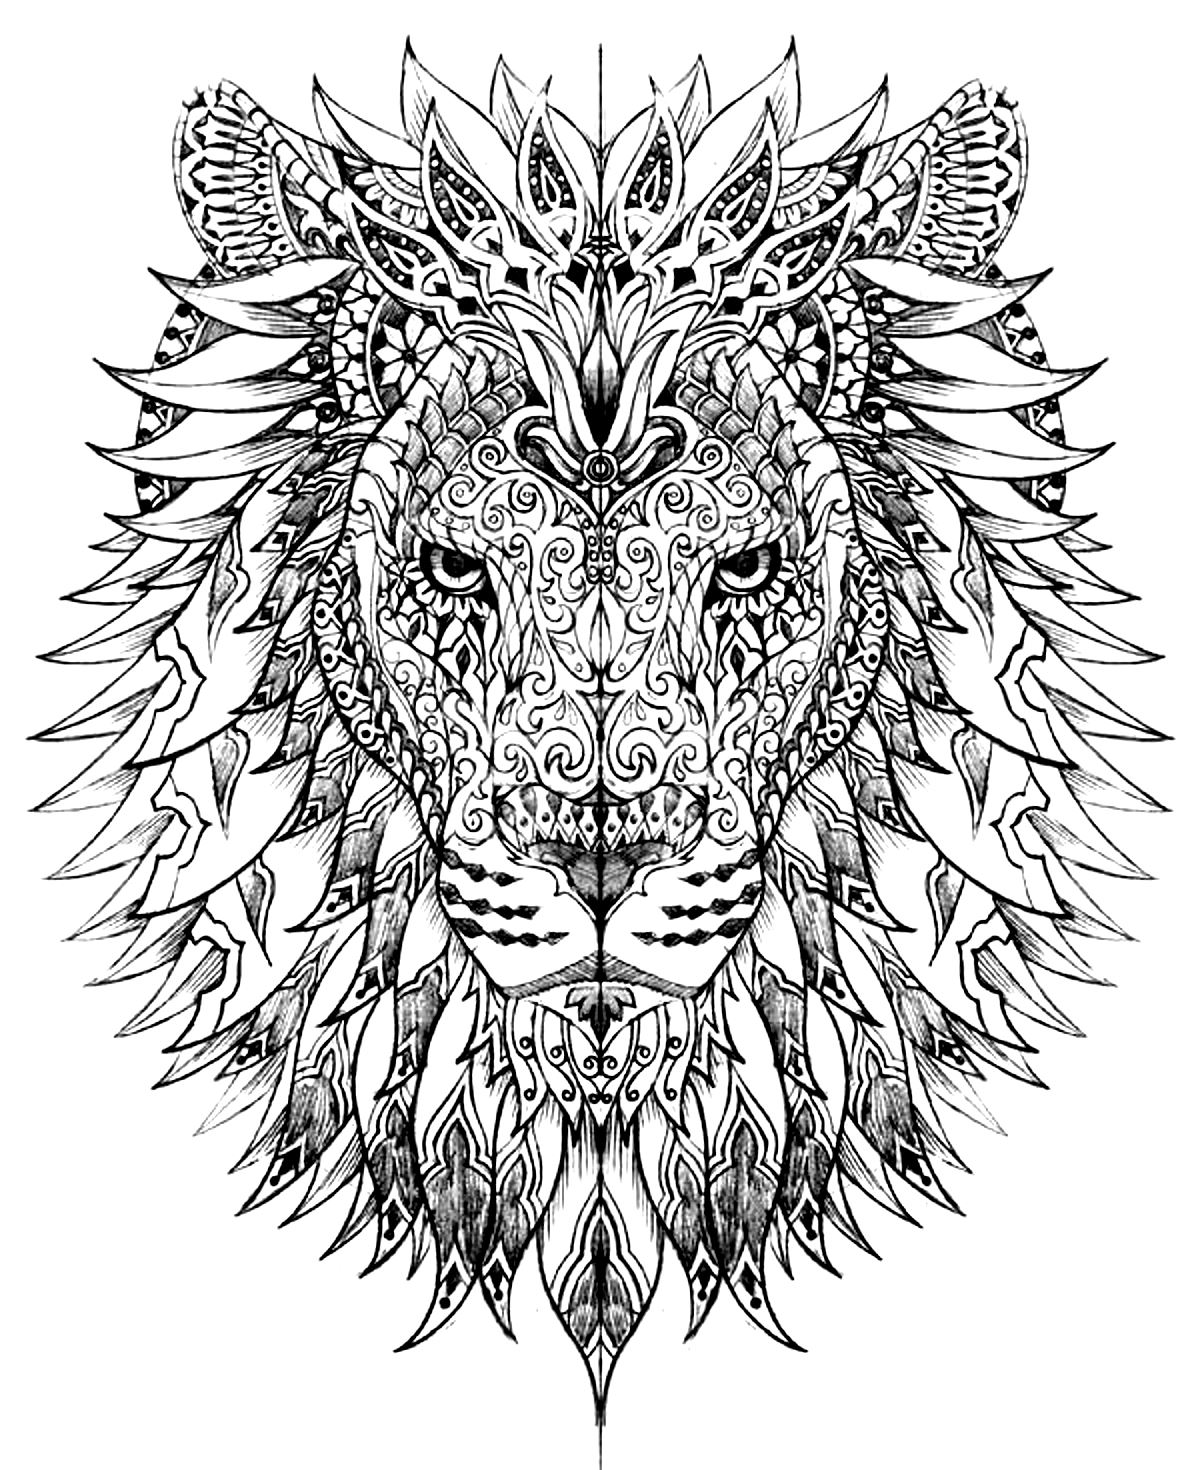 Difficult lion head Animals Coloring pages for adults JustColor